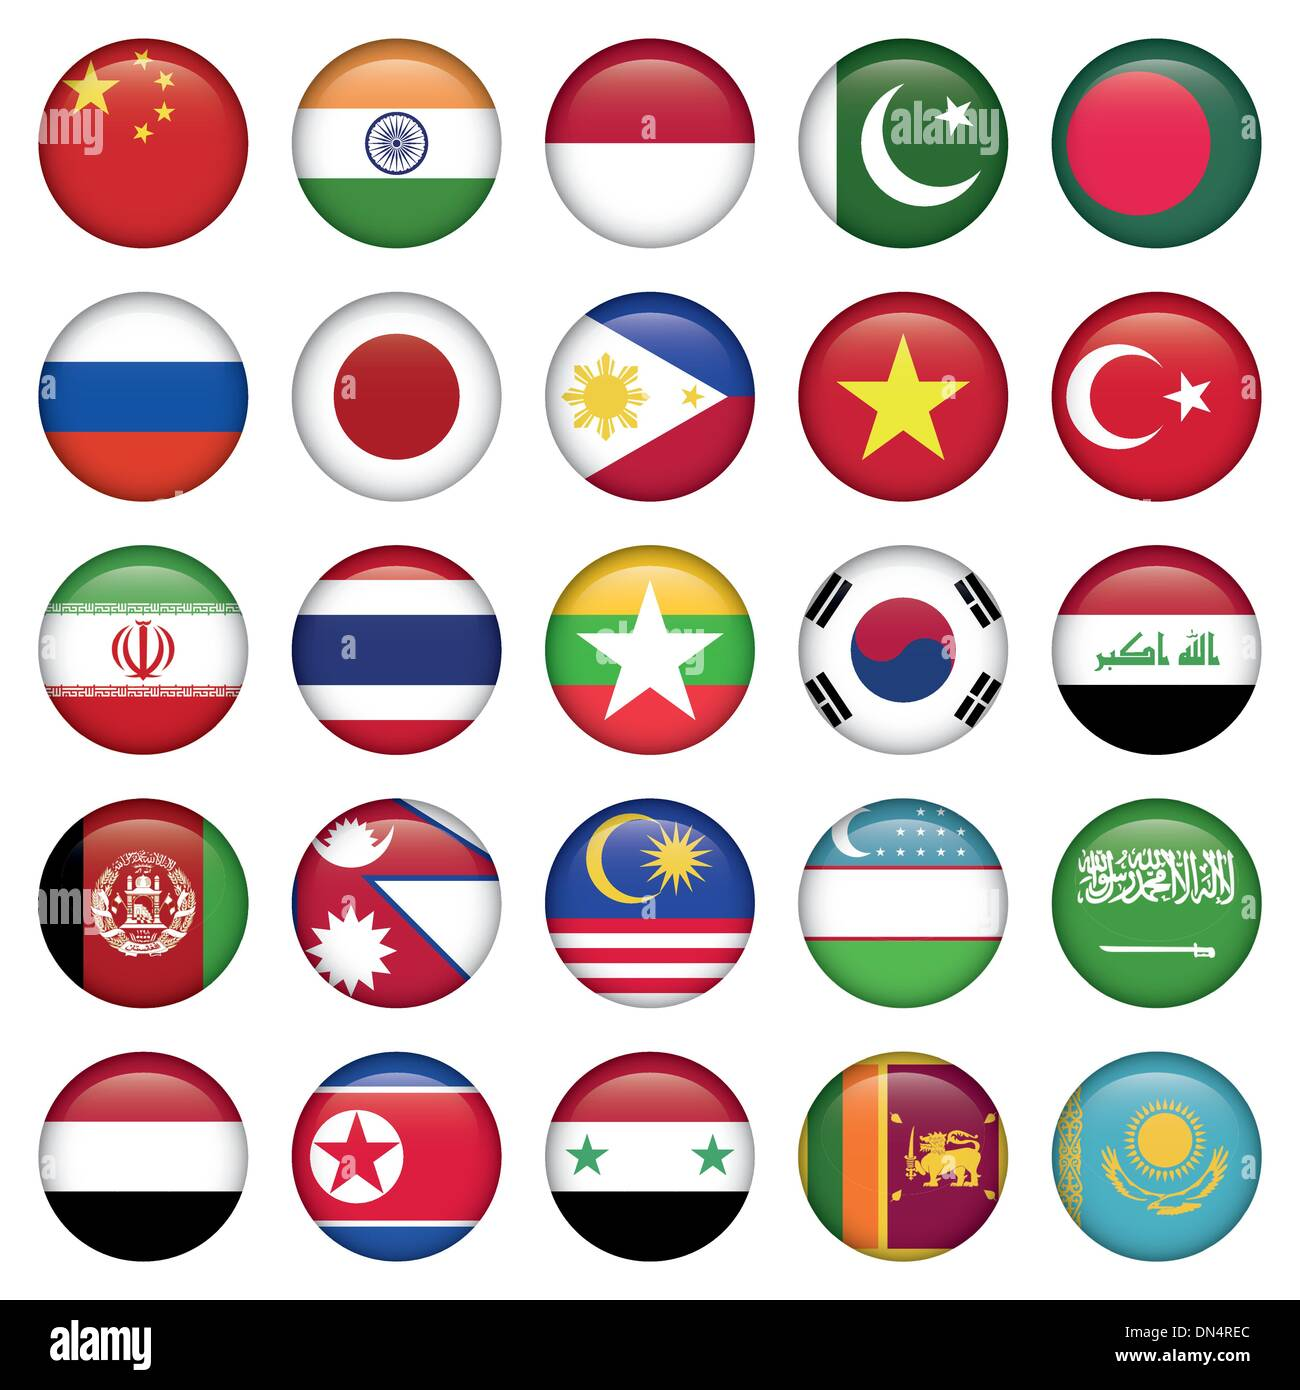 Asiatic Flags Round Icons - Stock Image